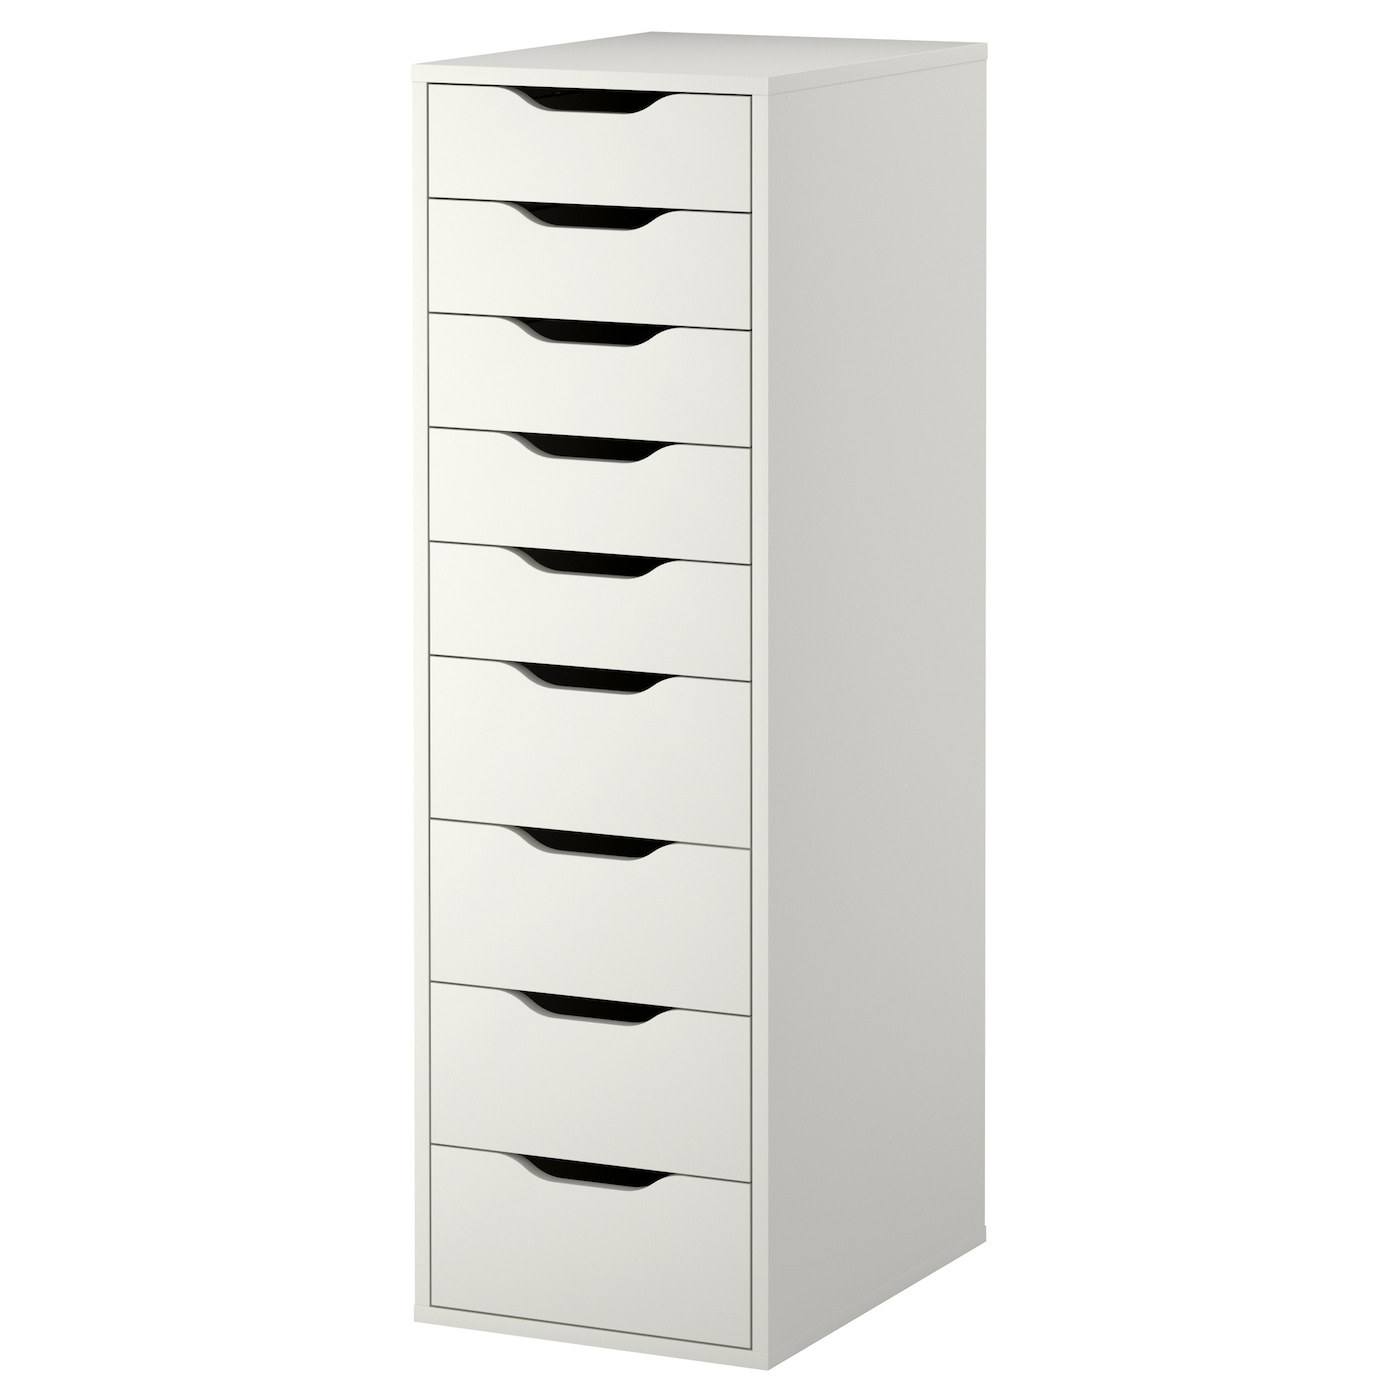 ALEX white, Drawer unit with 9 drawers